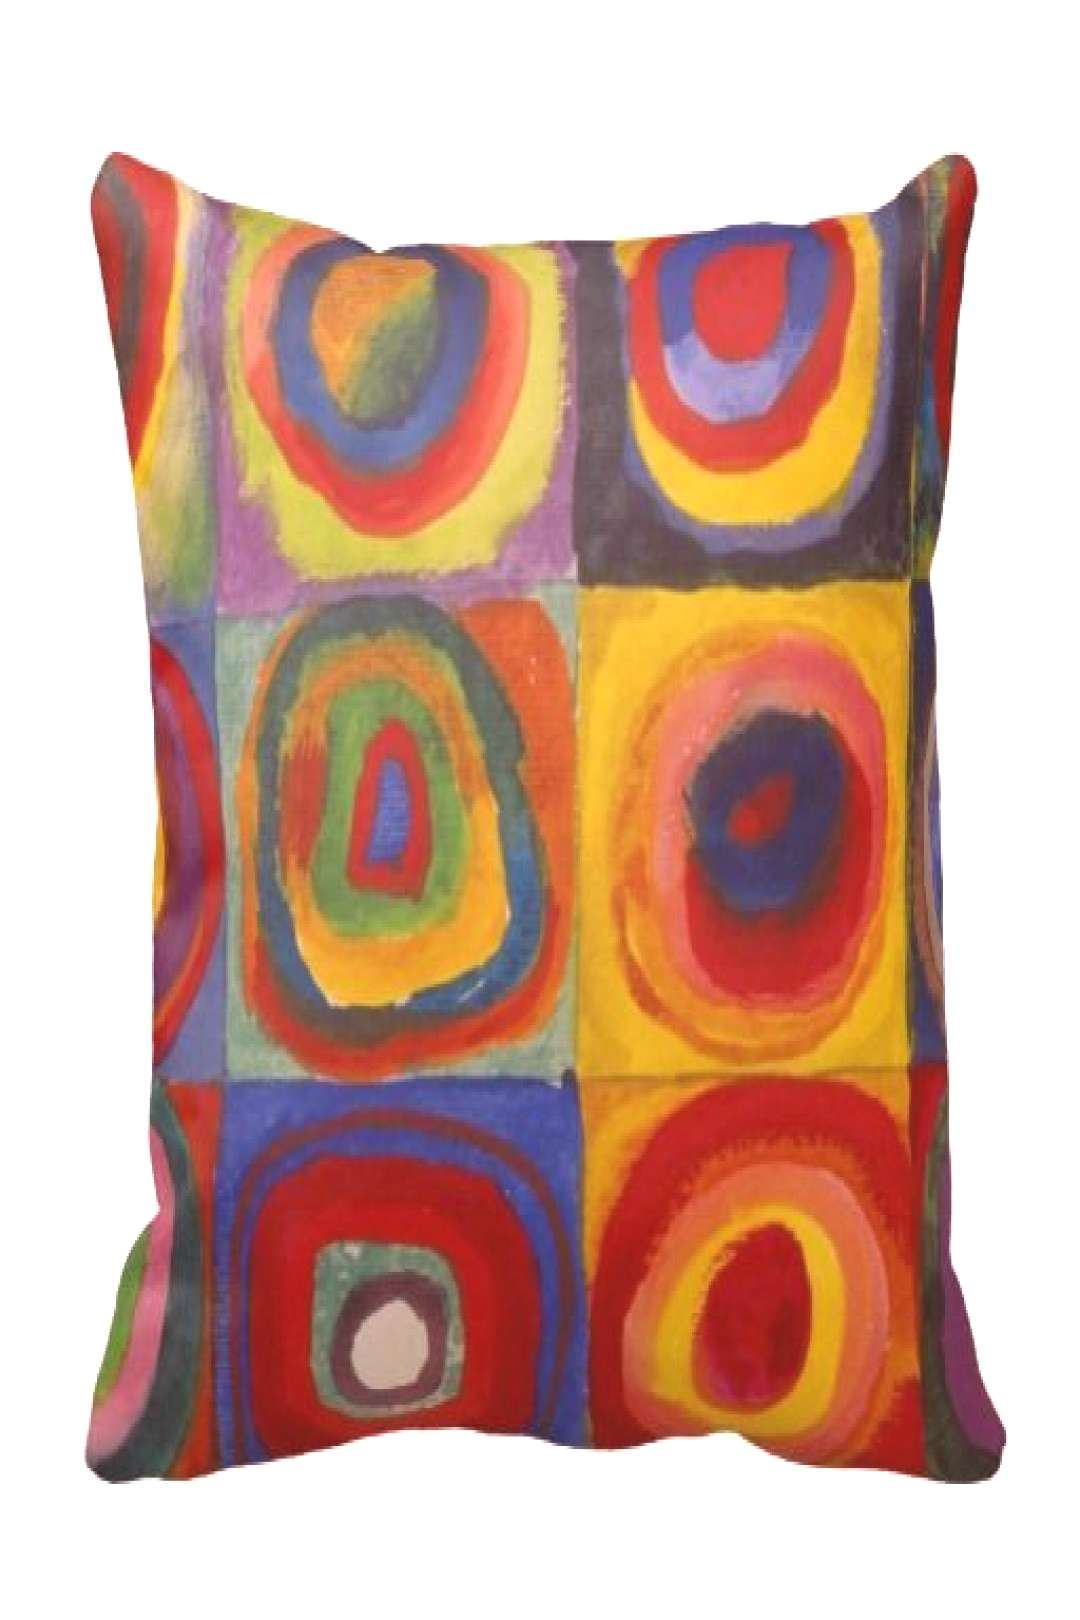 Kandinsky Color Study of Squares & Circles Throw Pillow |  -   -